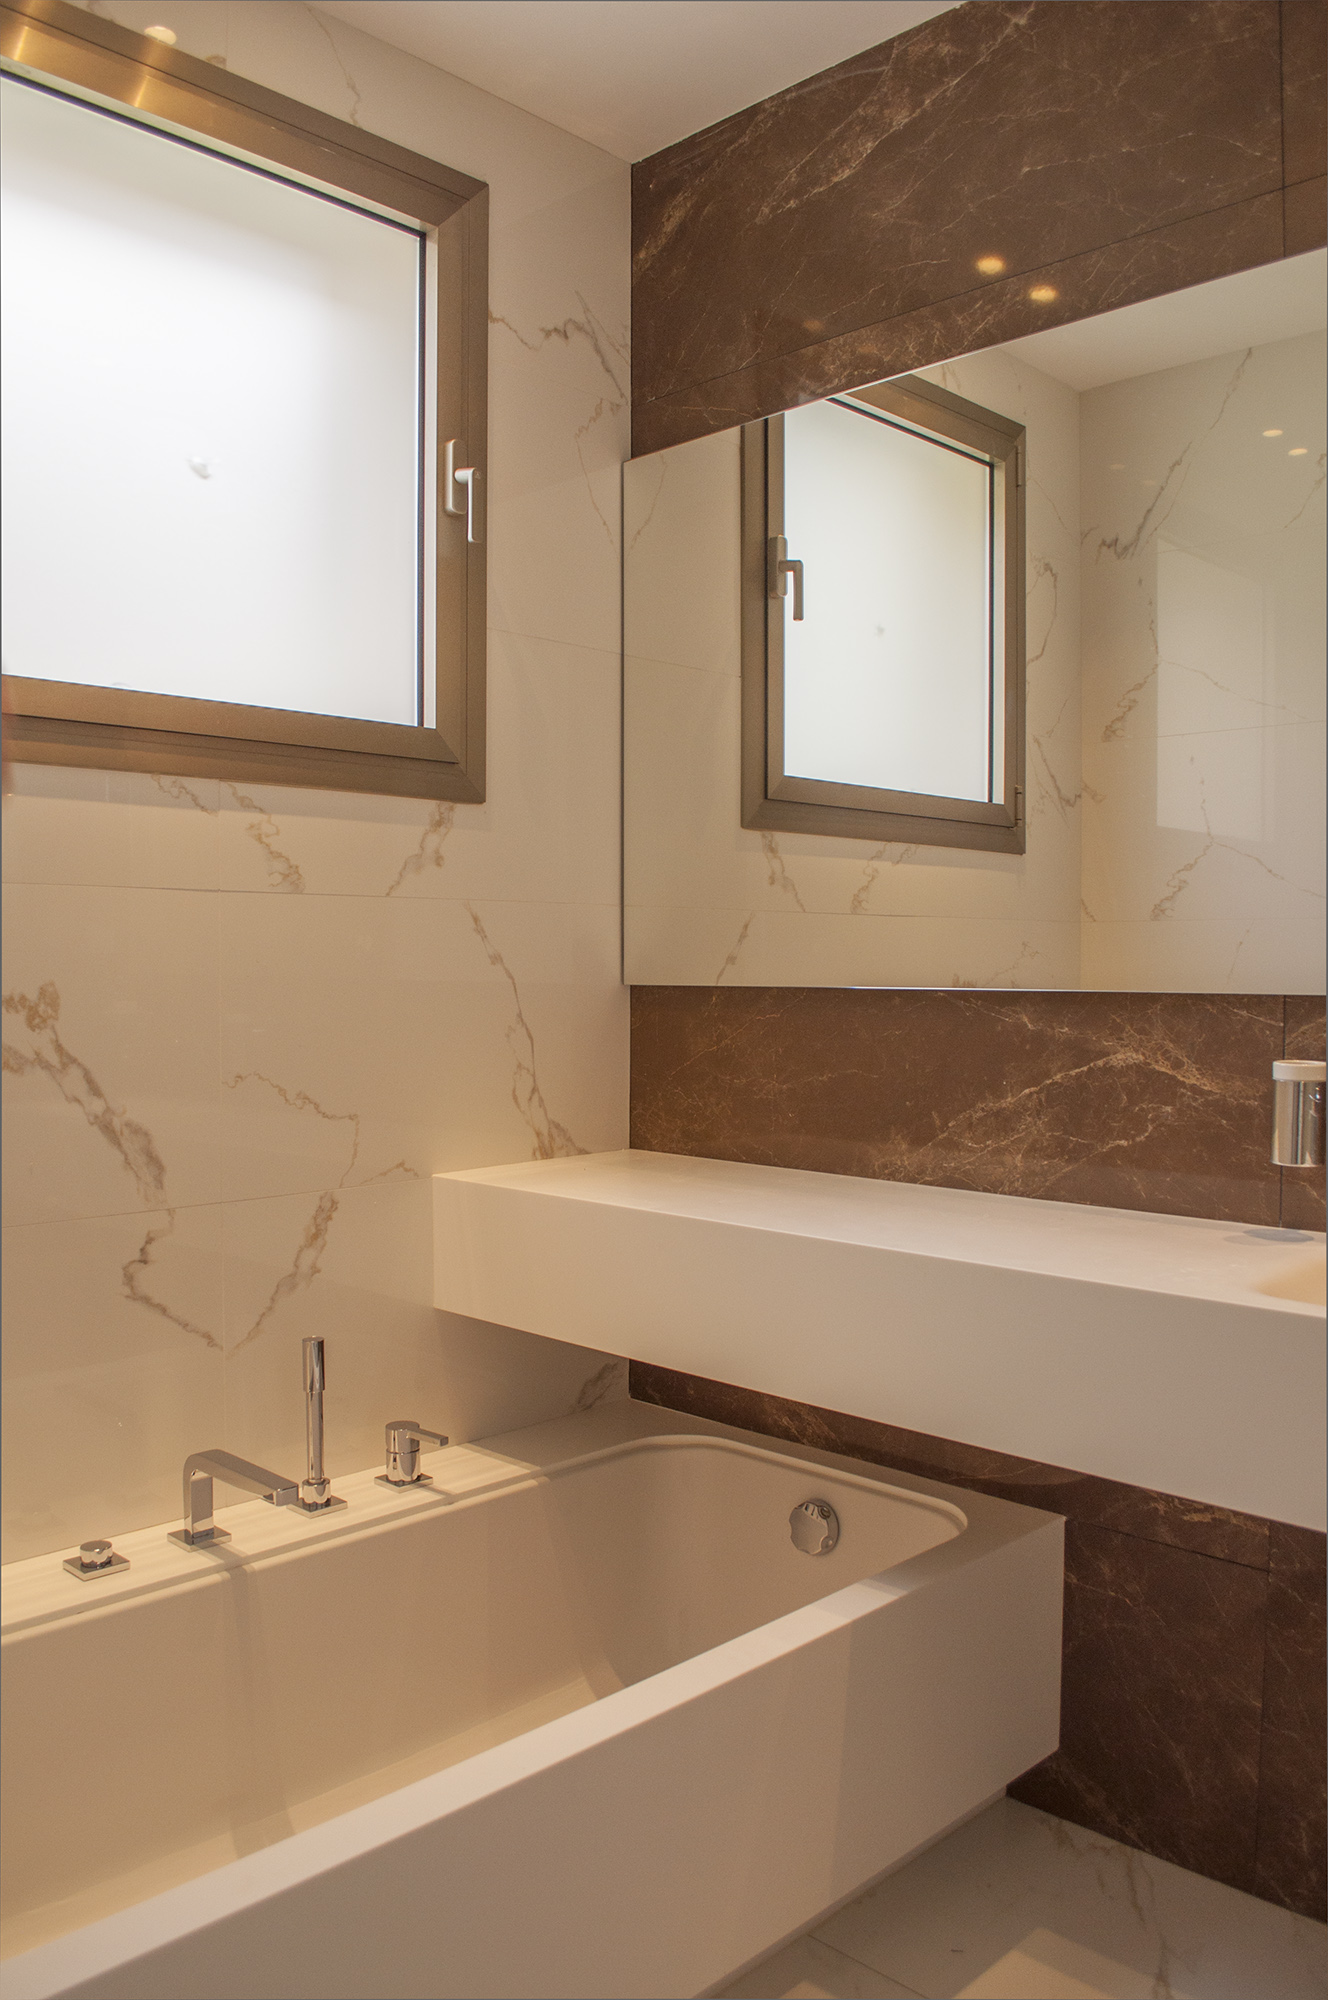 24-rardo-architects-houses-in-sitges-bath-room-marble-faucet-tap-basin